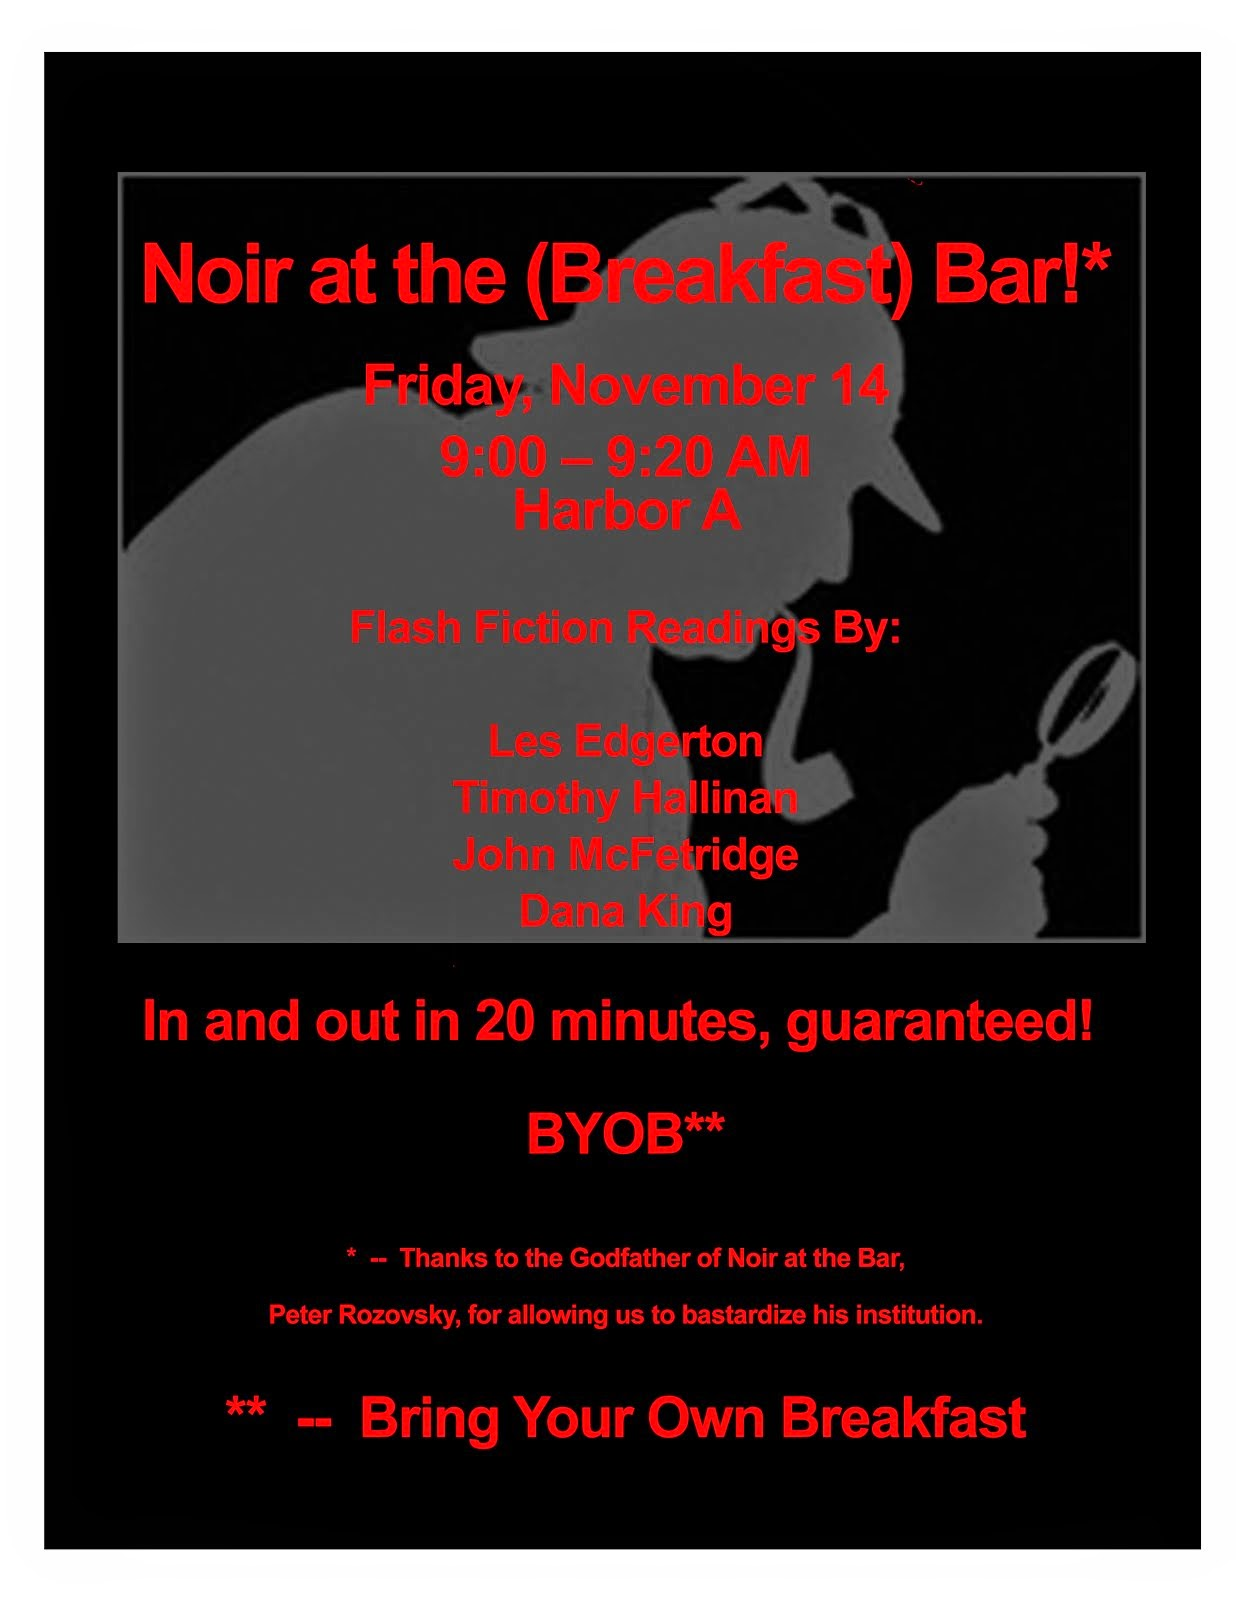 Noir at the (Breakfast) Bar